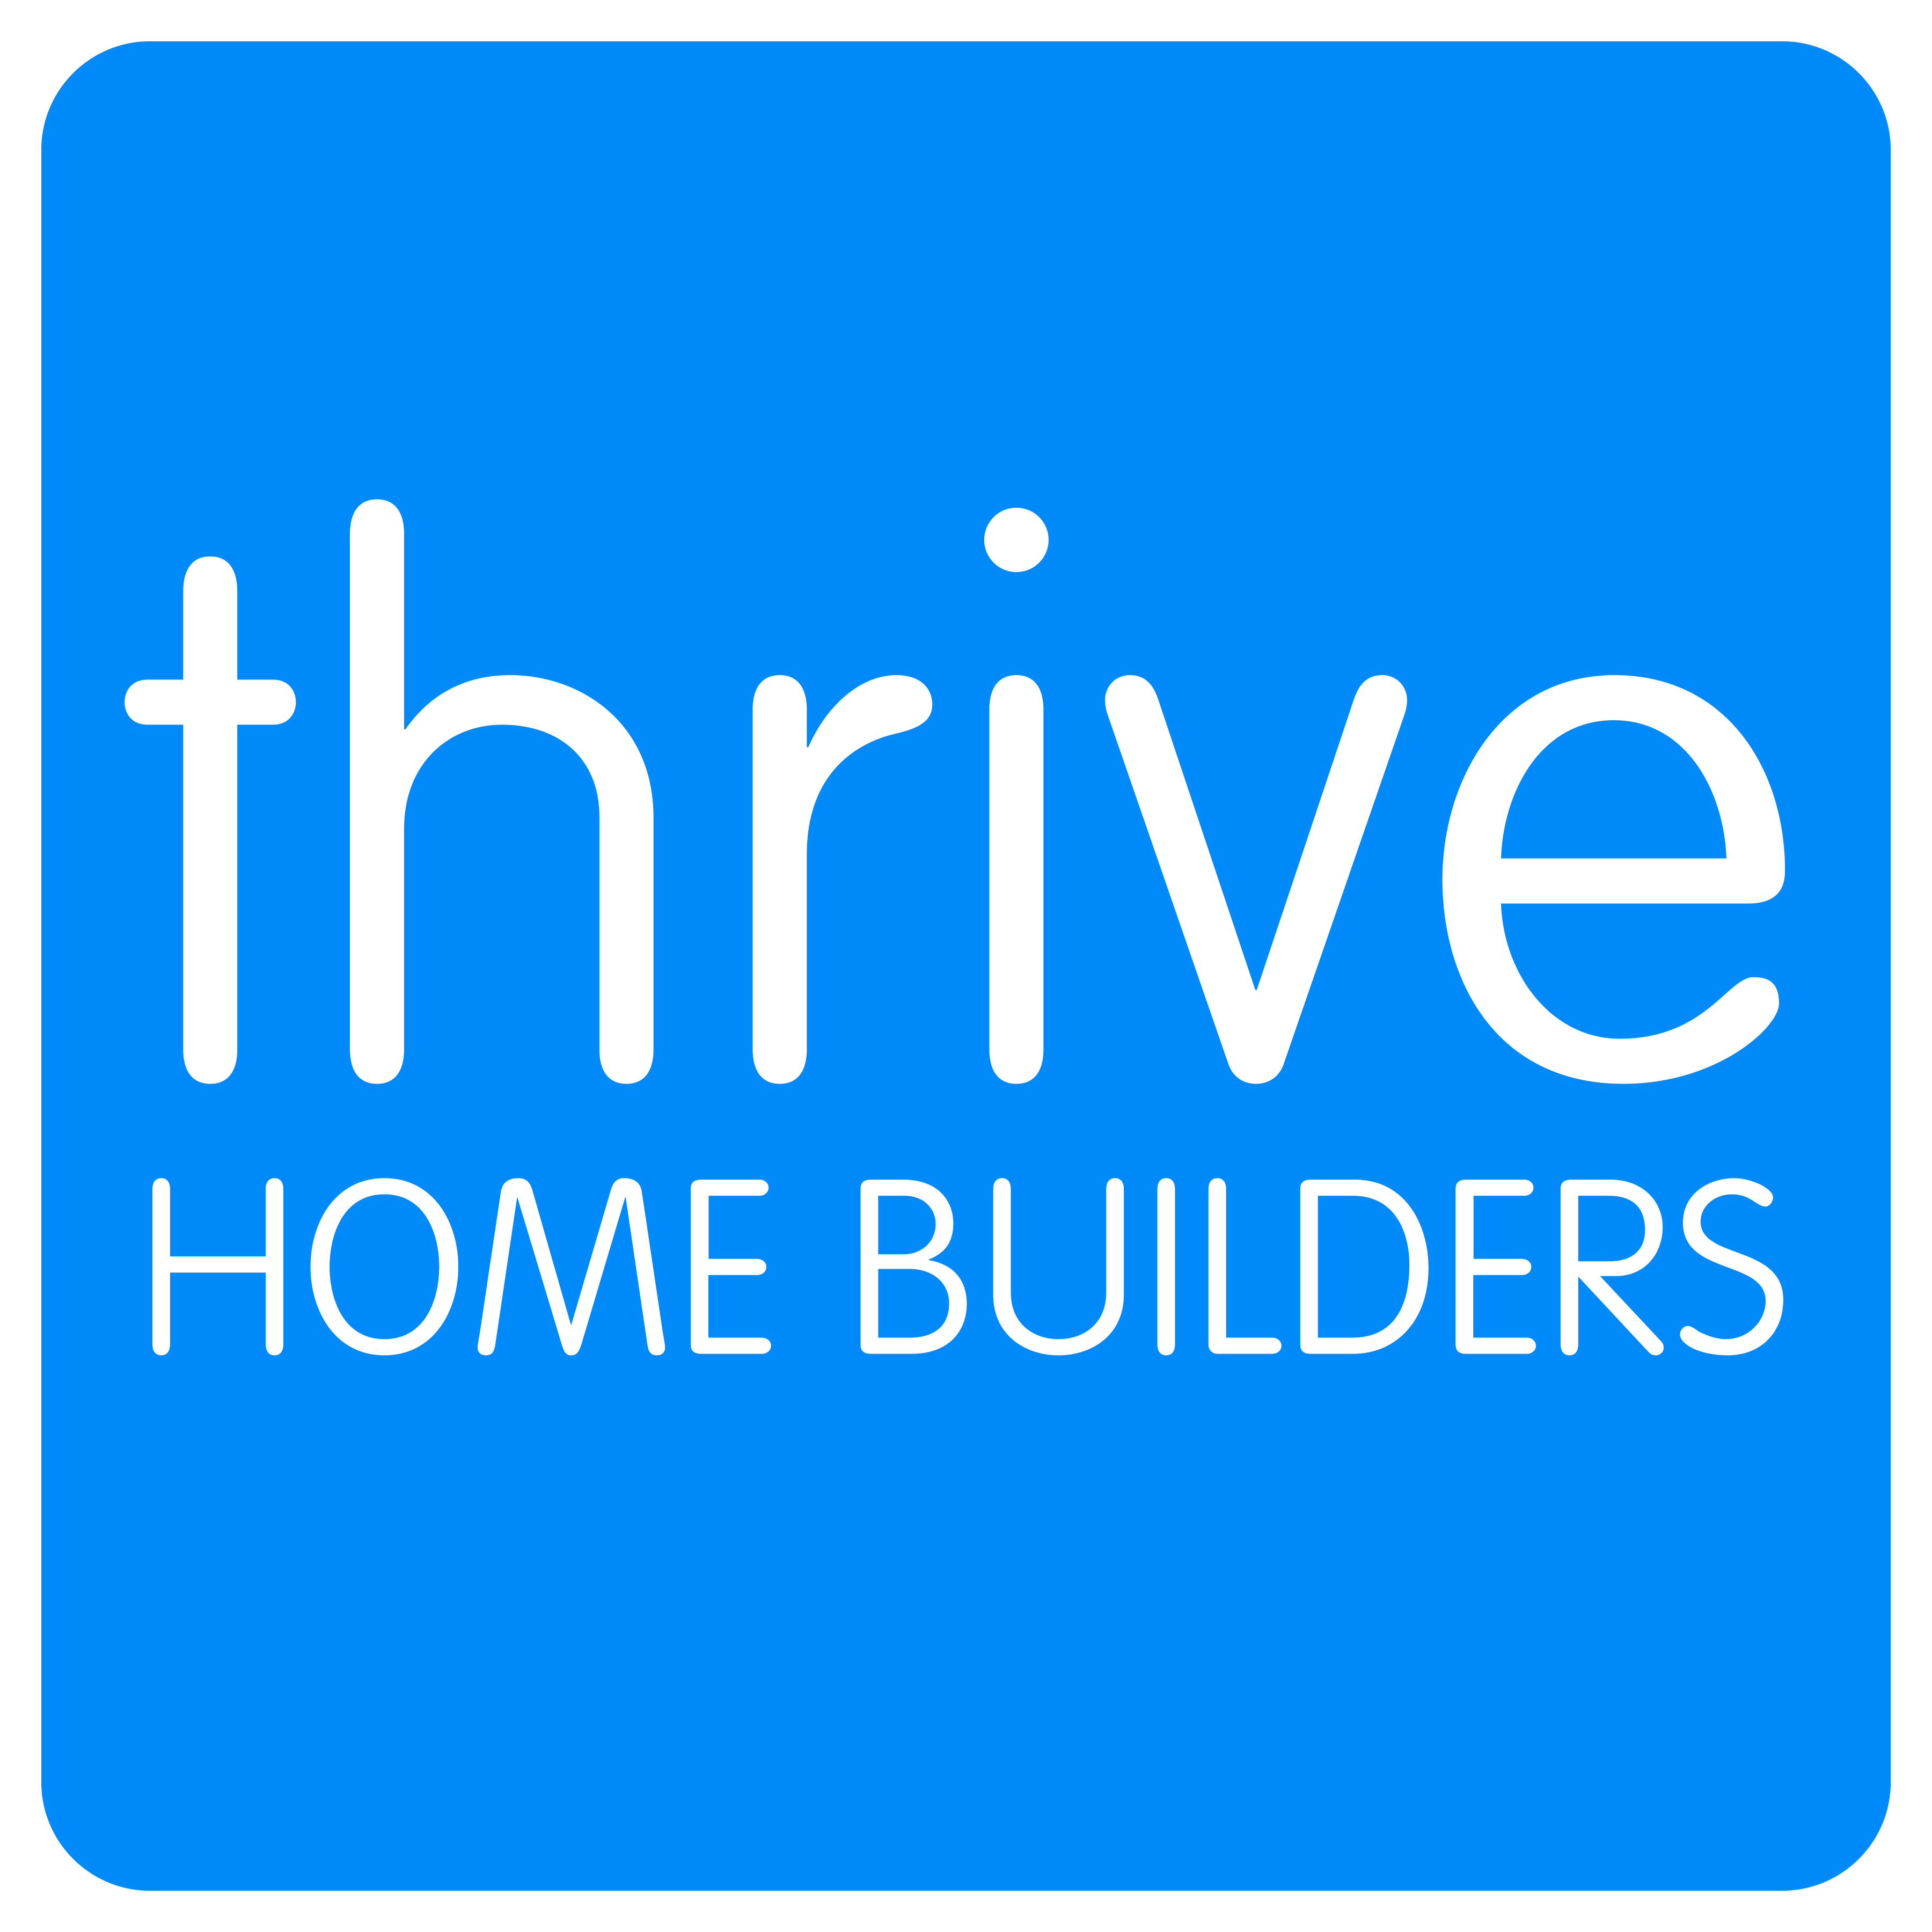 THRIVE LOGO 4x4.jpg